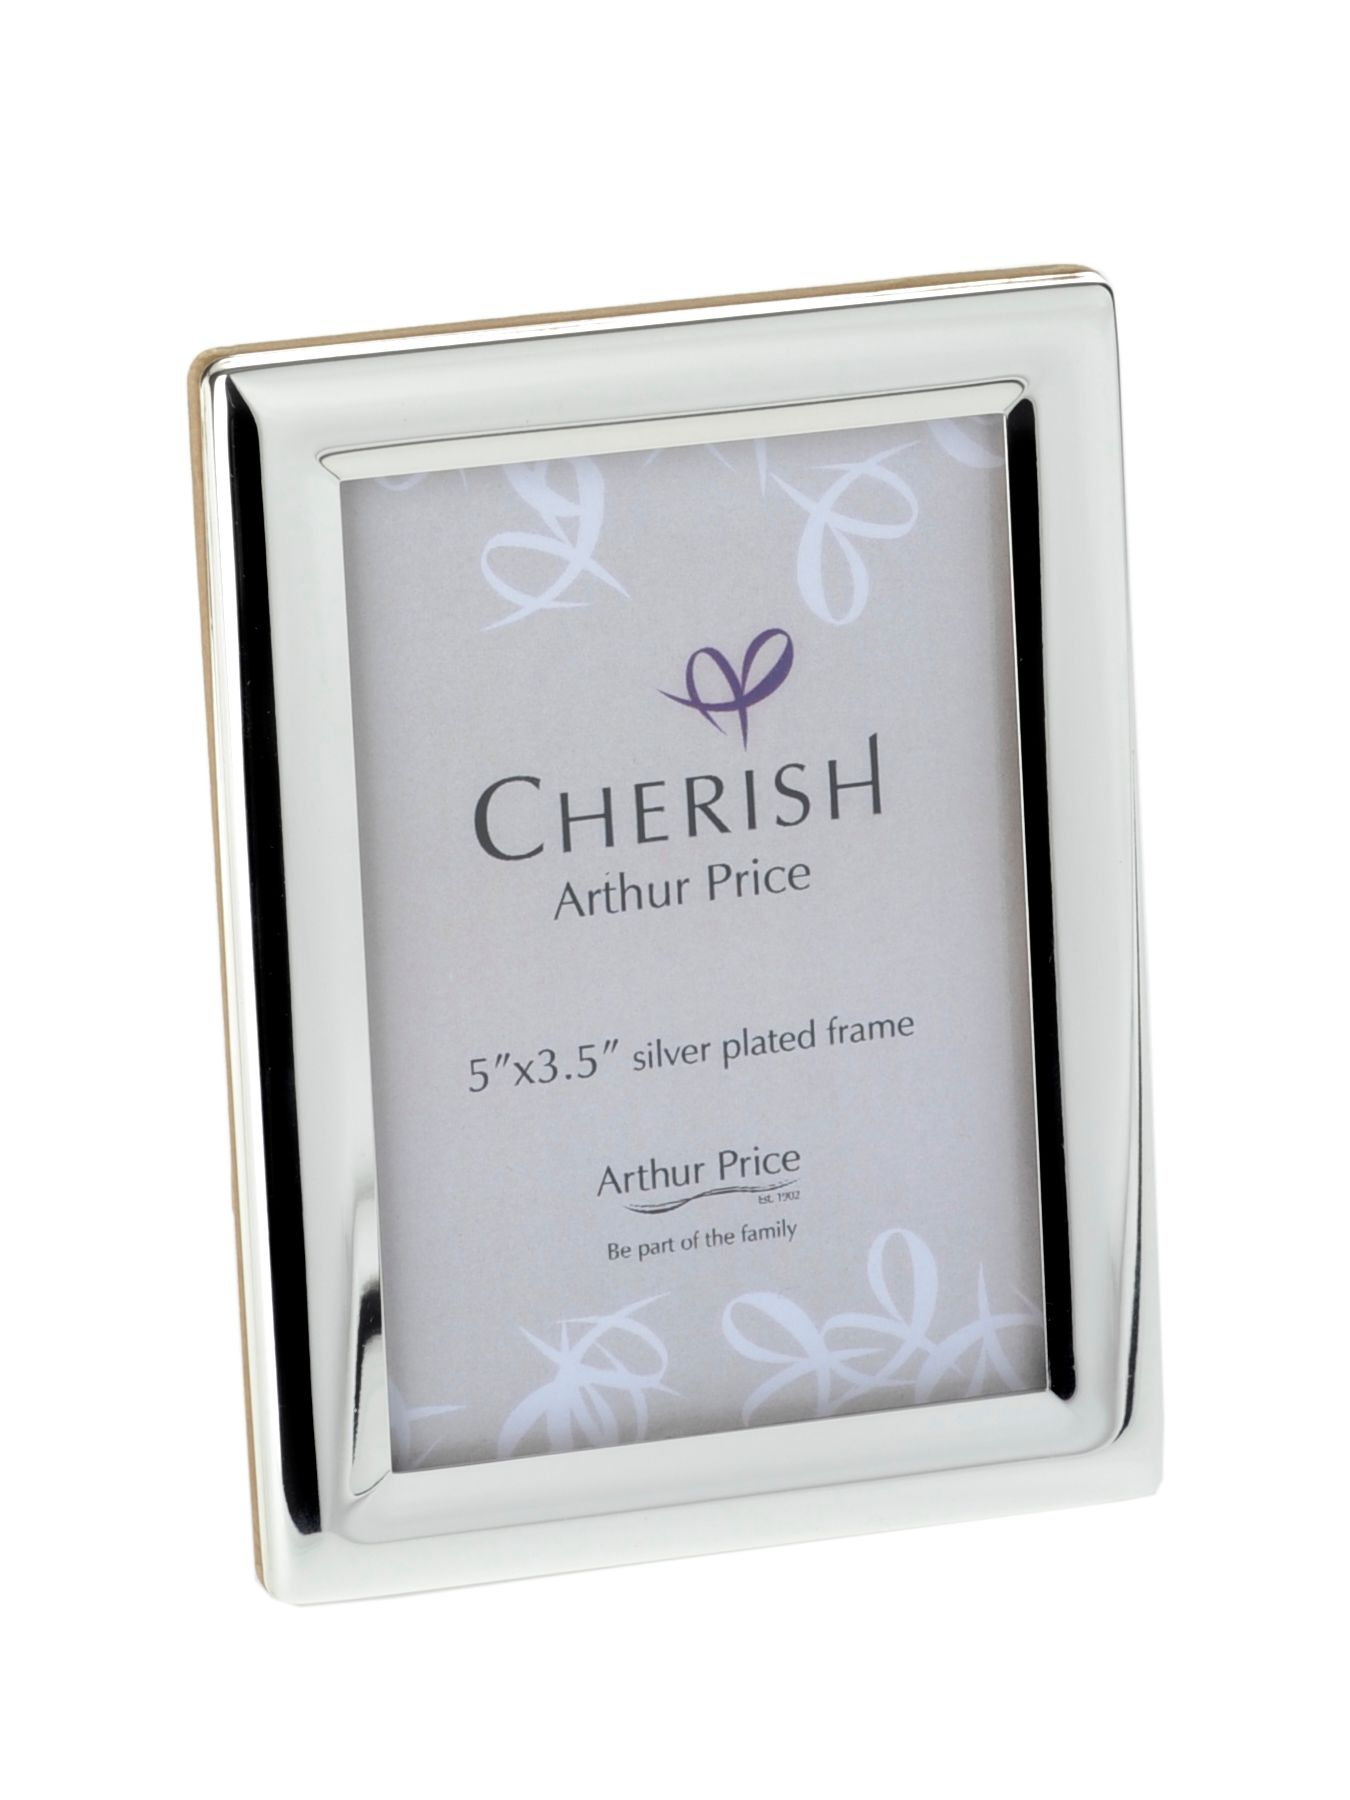 Silver plated 3.5 x 5 Oxford photograph frame